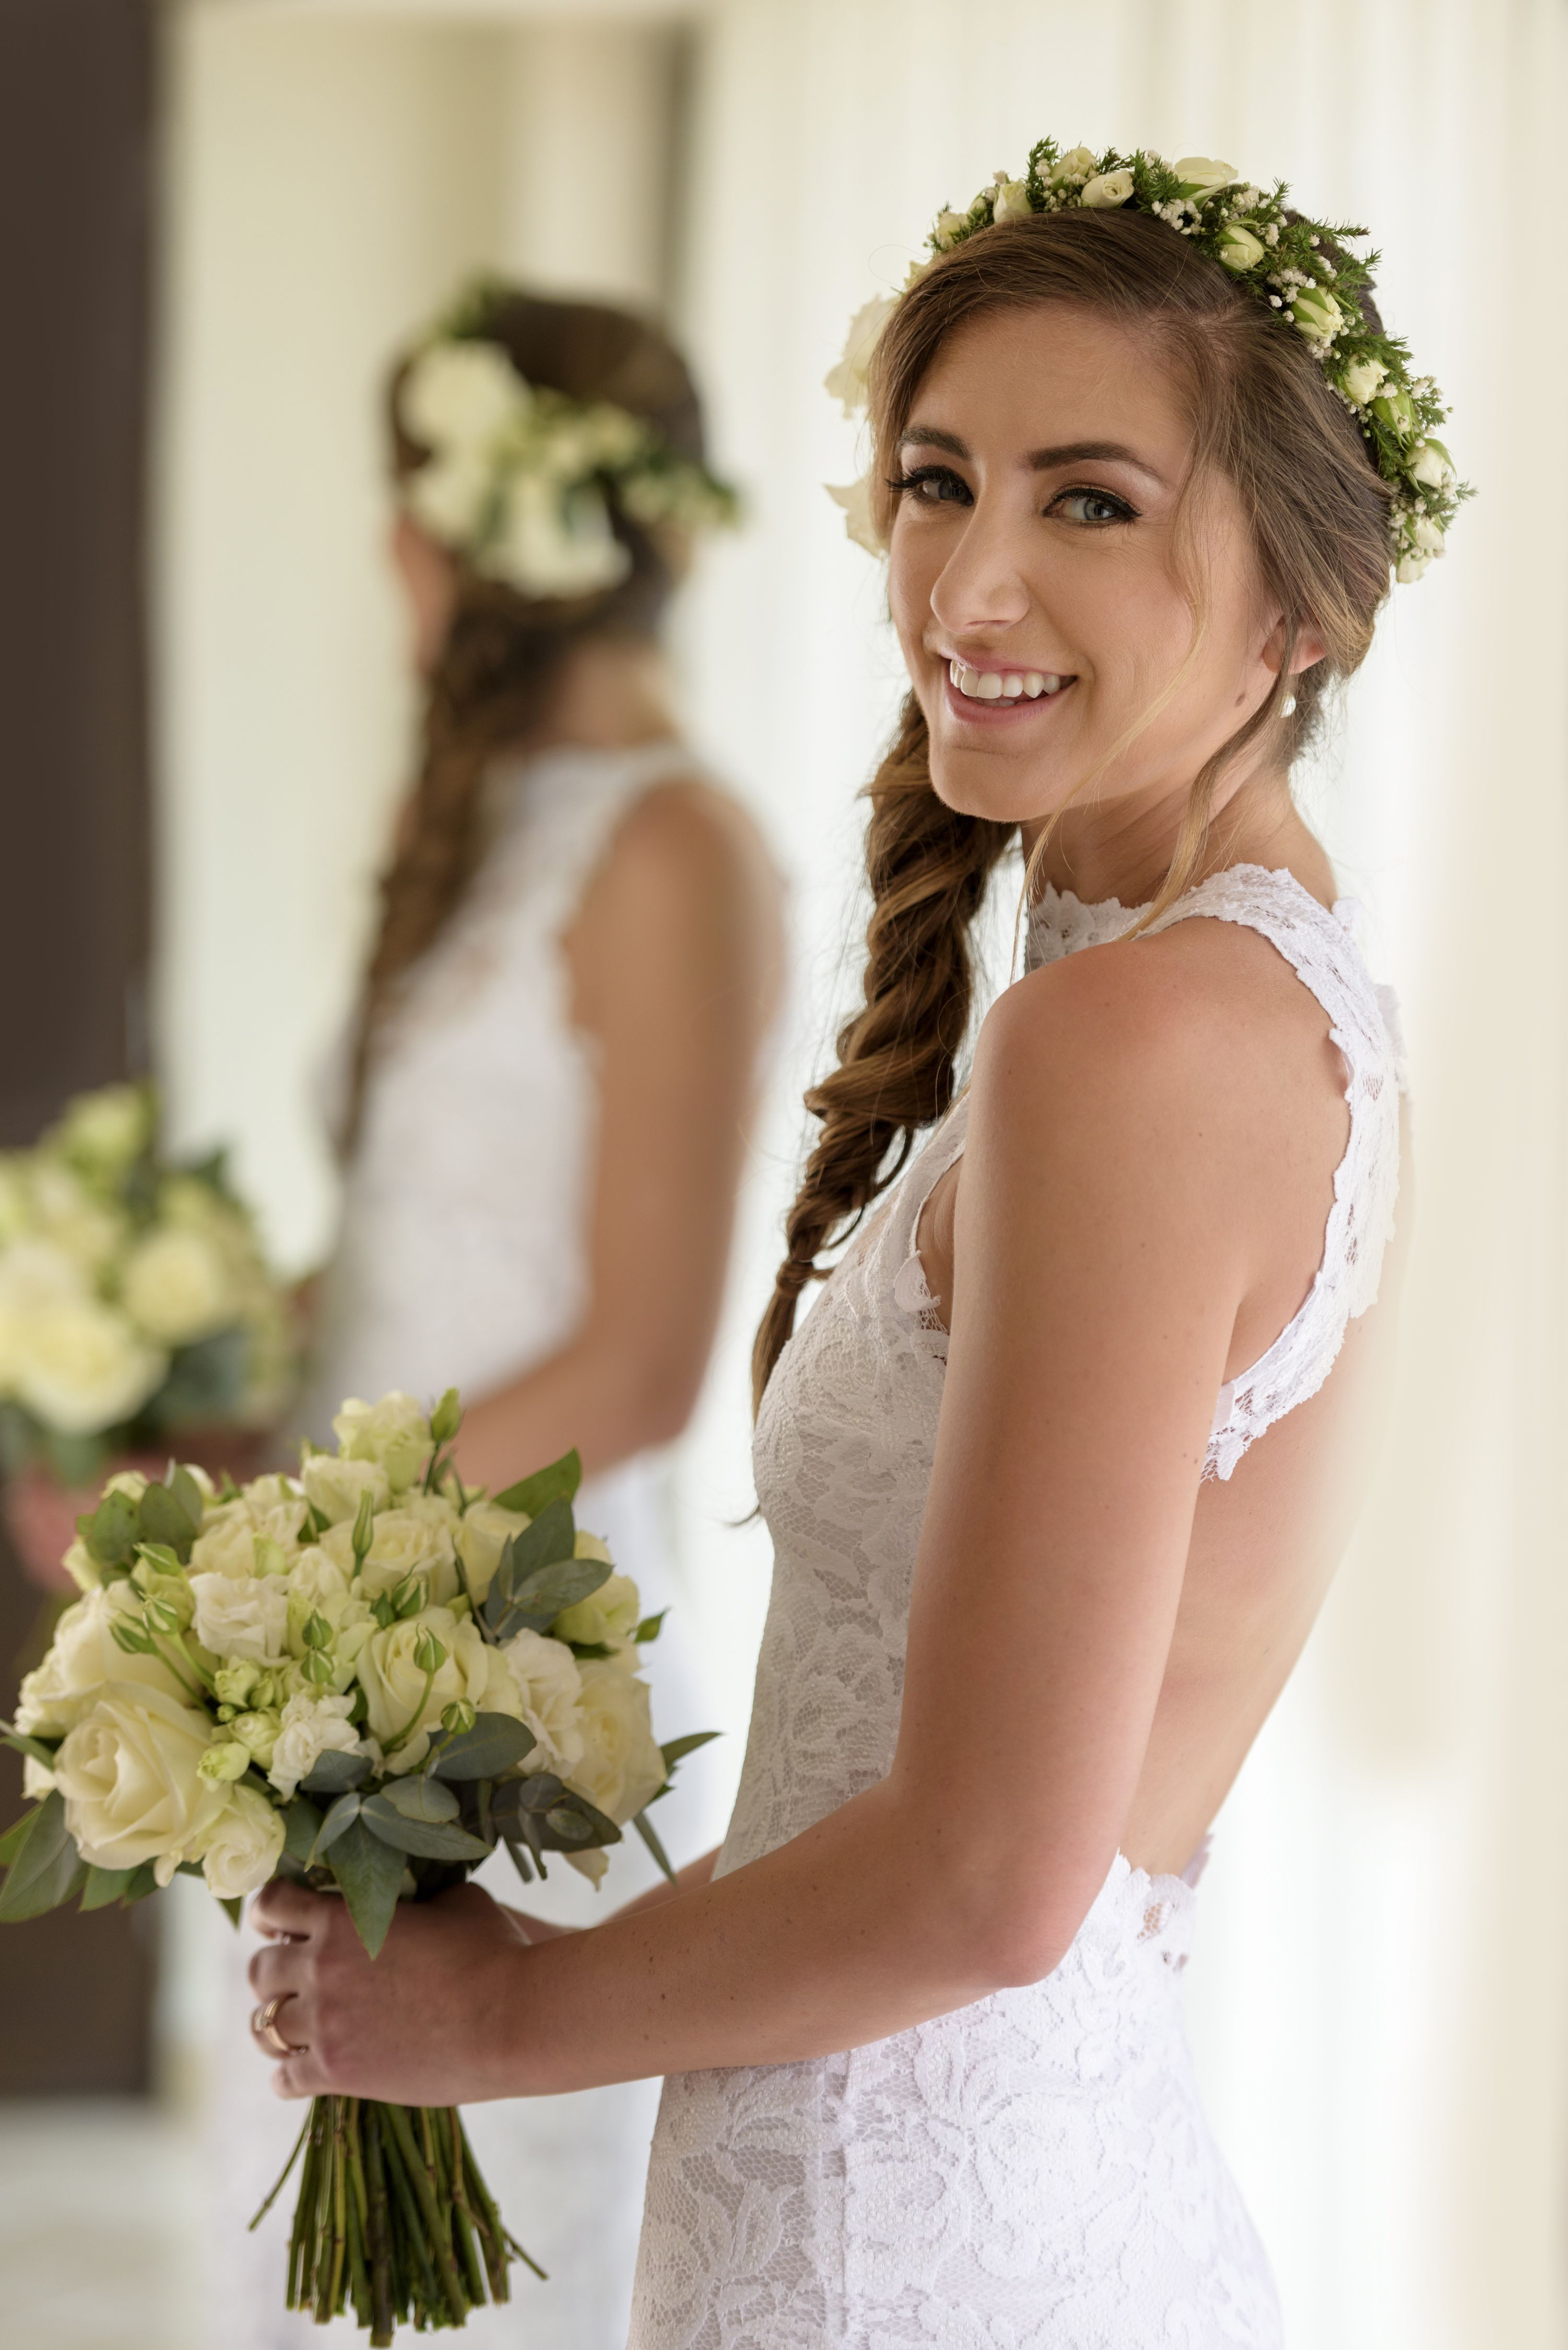 bridal airbrush makeup and a braid romantic hairstyle for